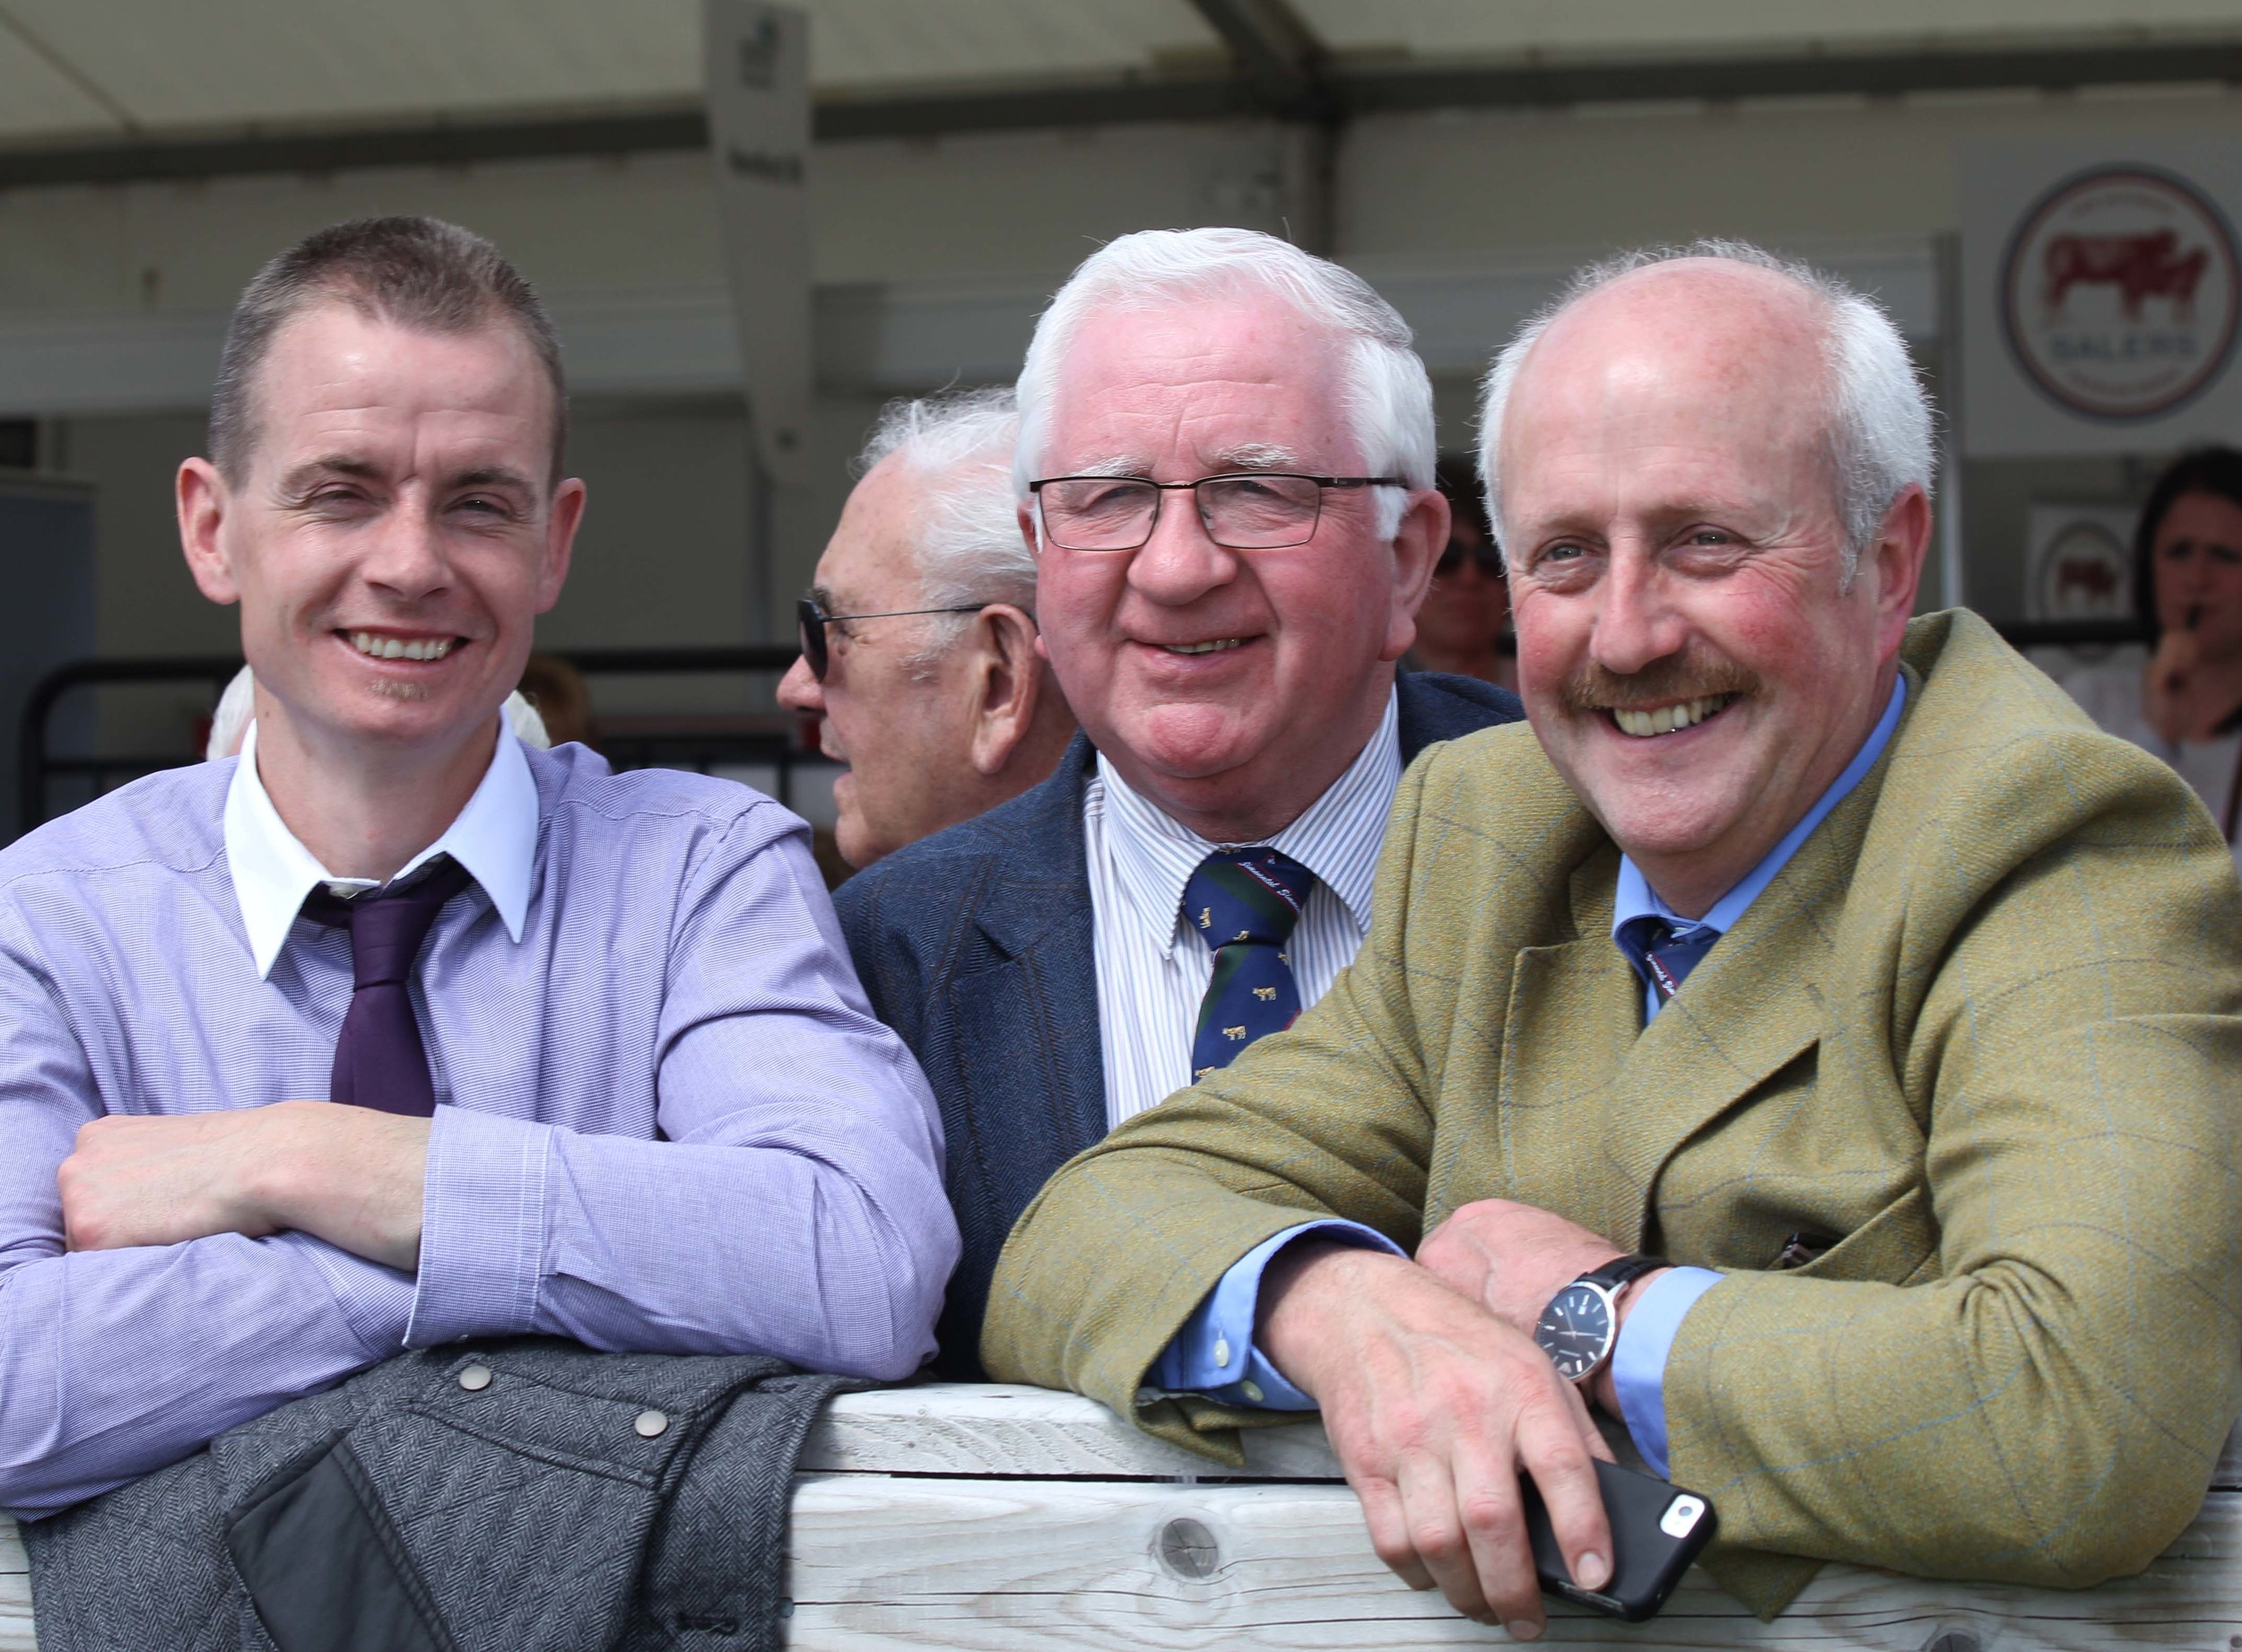 NI Simmental Cattle Breeders' Club chairman Richard Rodgers, enjoys the craic at Balmoral Show with Cecil McIlwaine, Newtownstewart, and Nigel Glasgow, Cookstown.